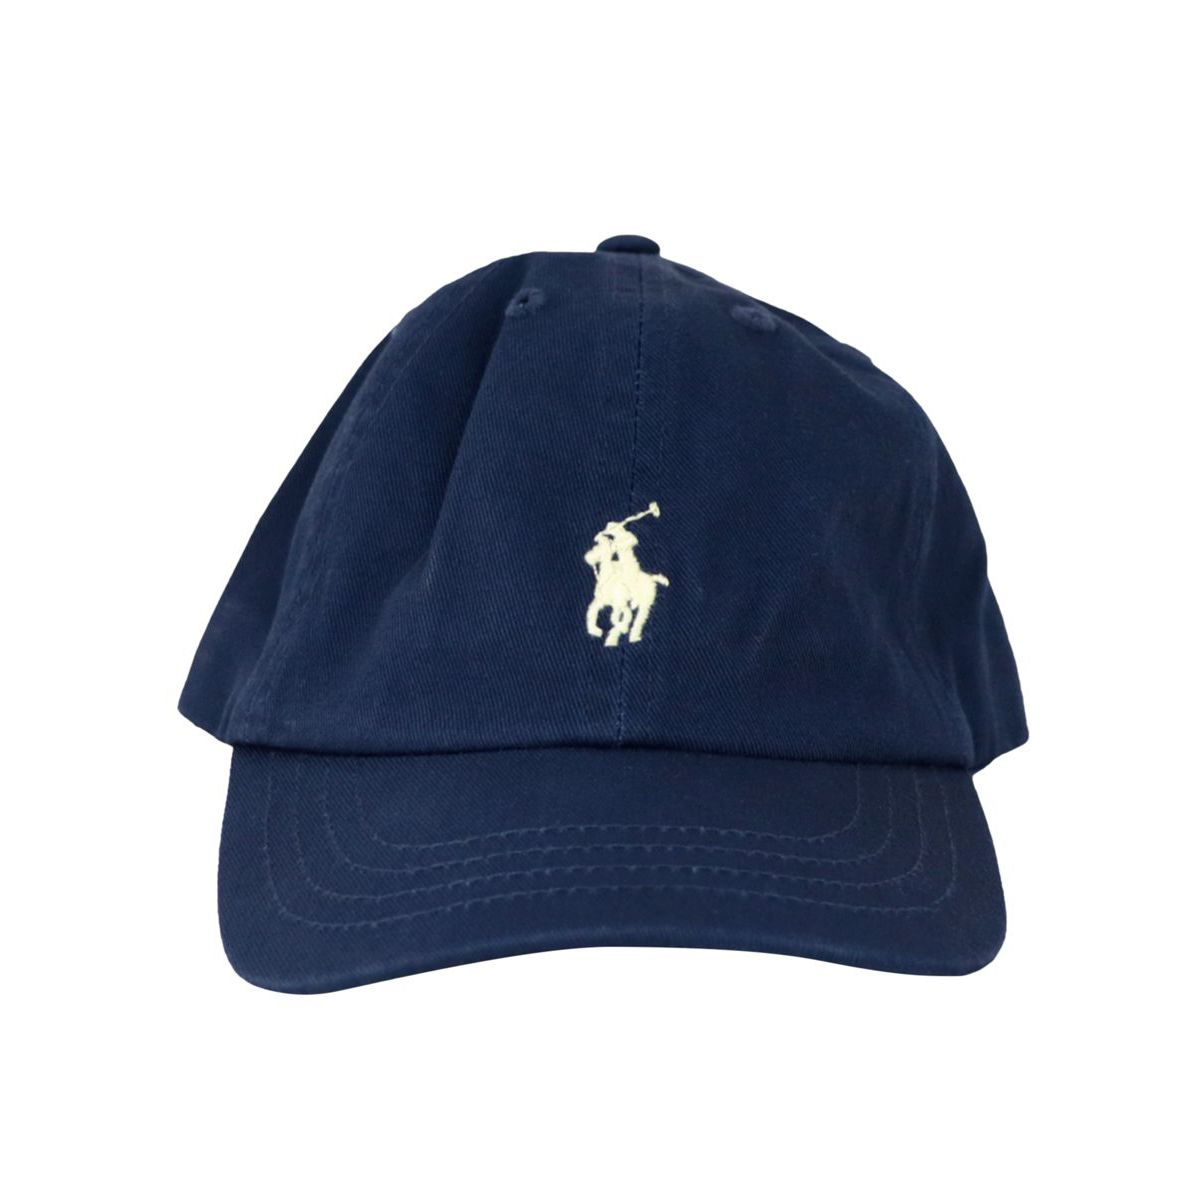 Cotton peaked cap with logo embroidery Navy Polo Ralph Lauren